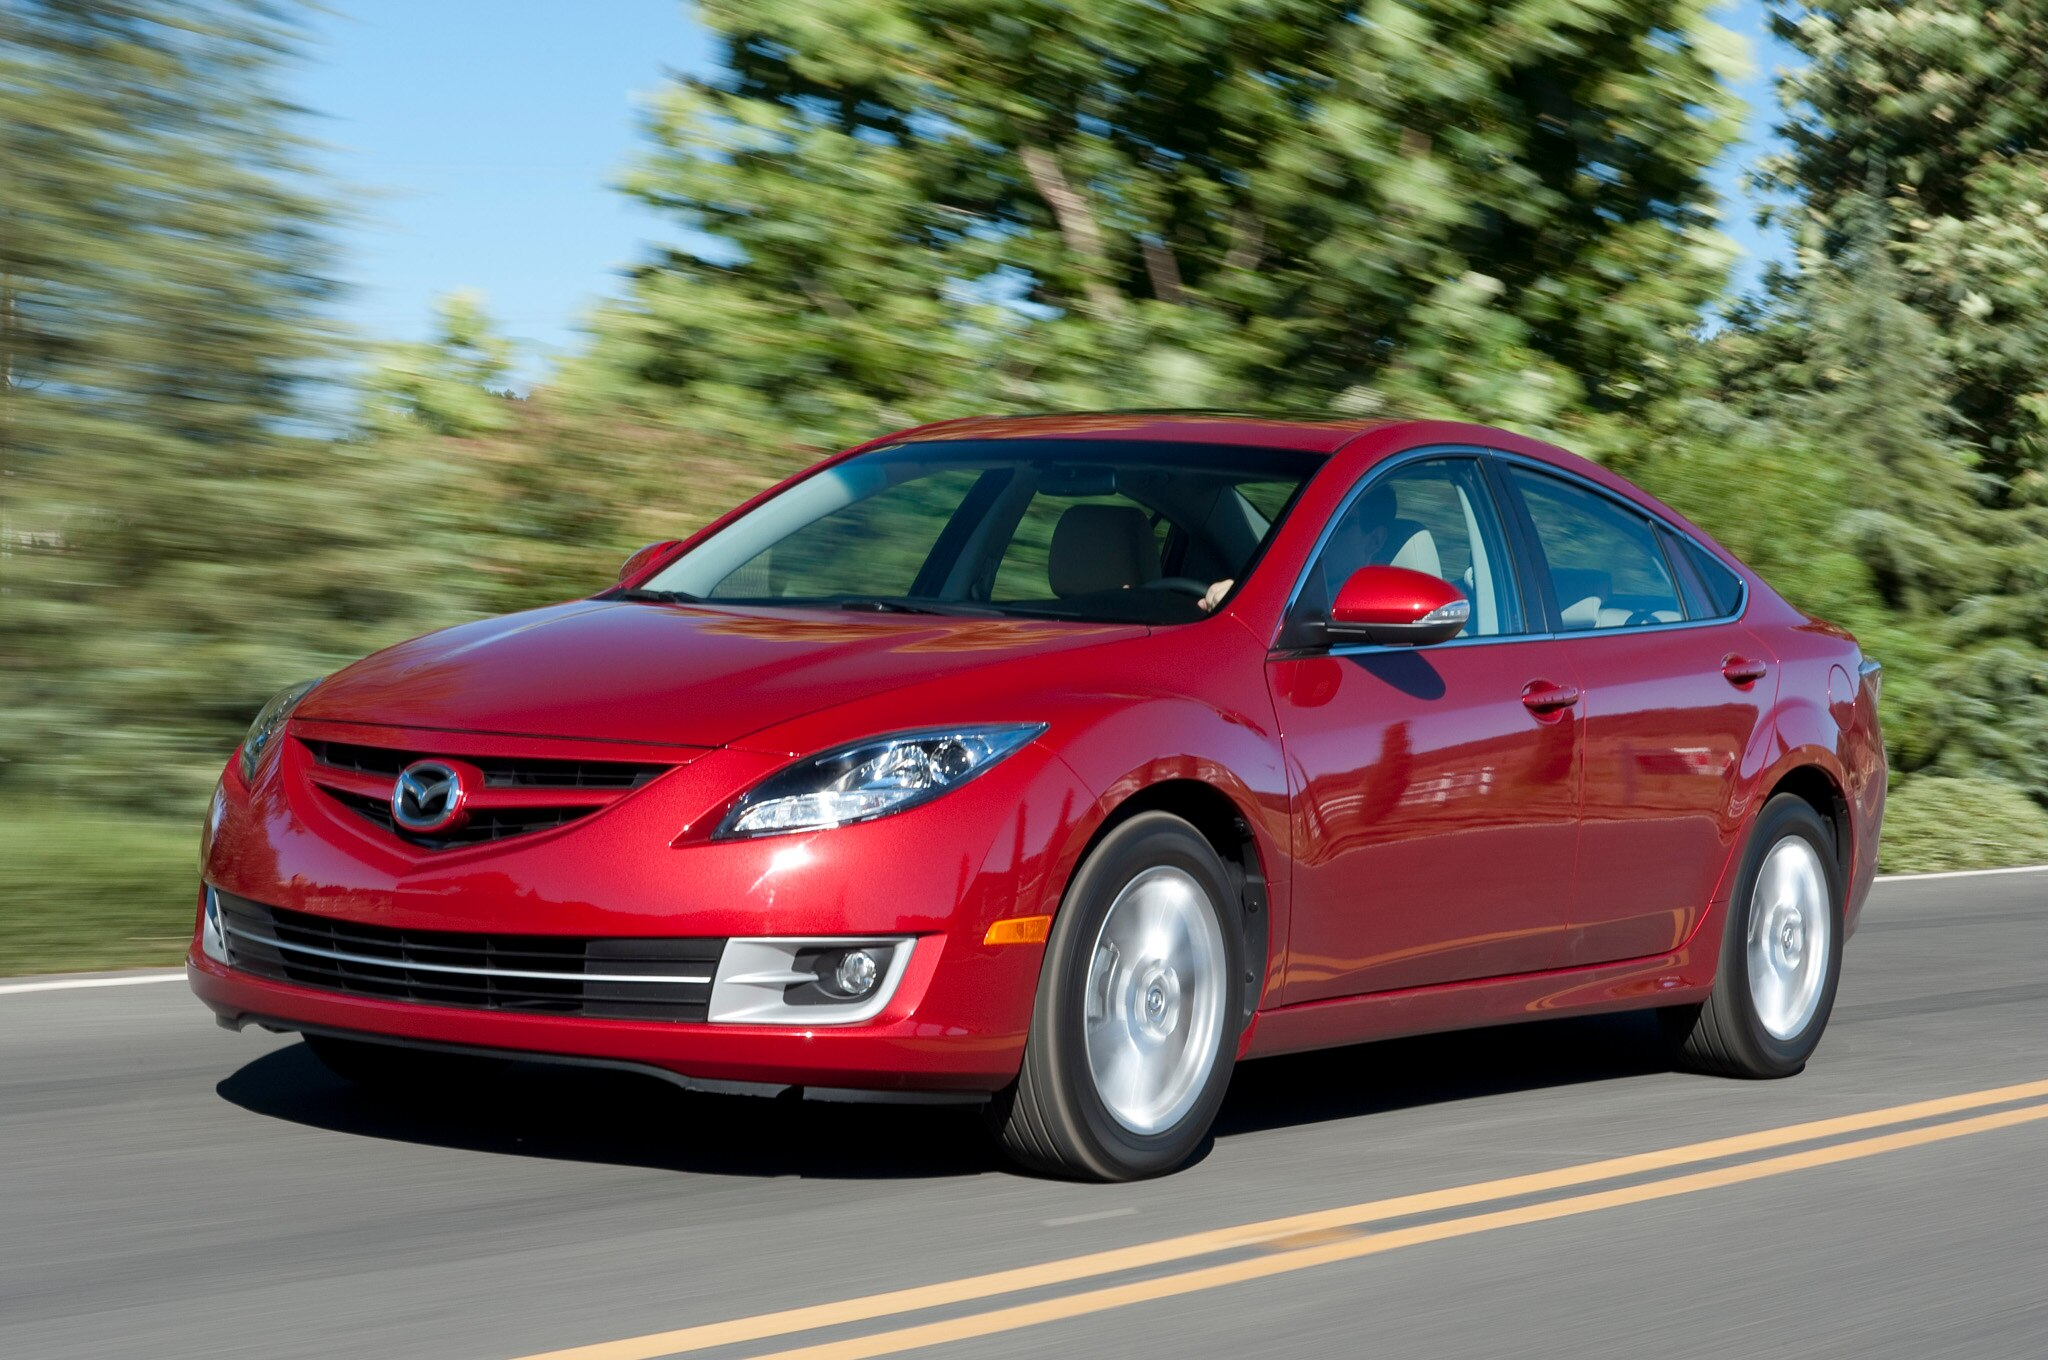 2012 Mazda 6 Front Three Quarters1